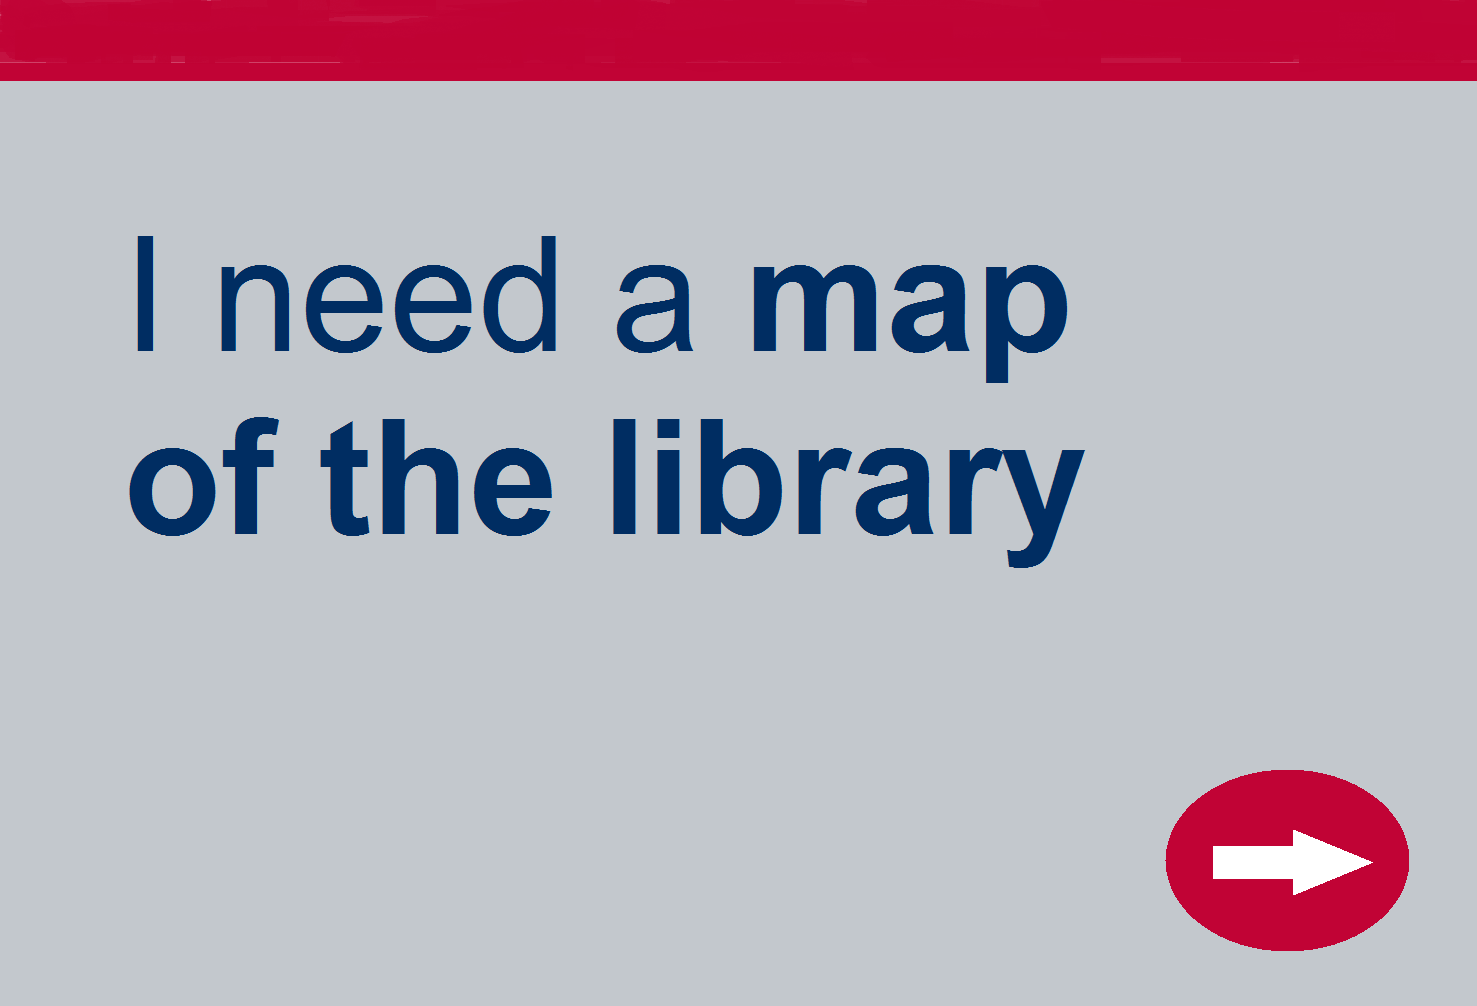 Need a map of the library